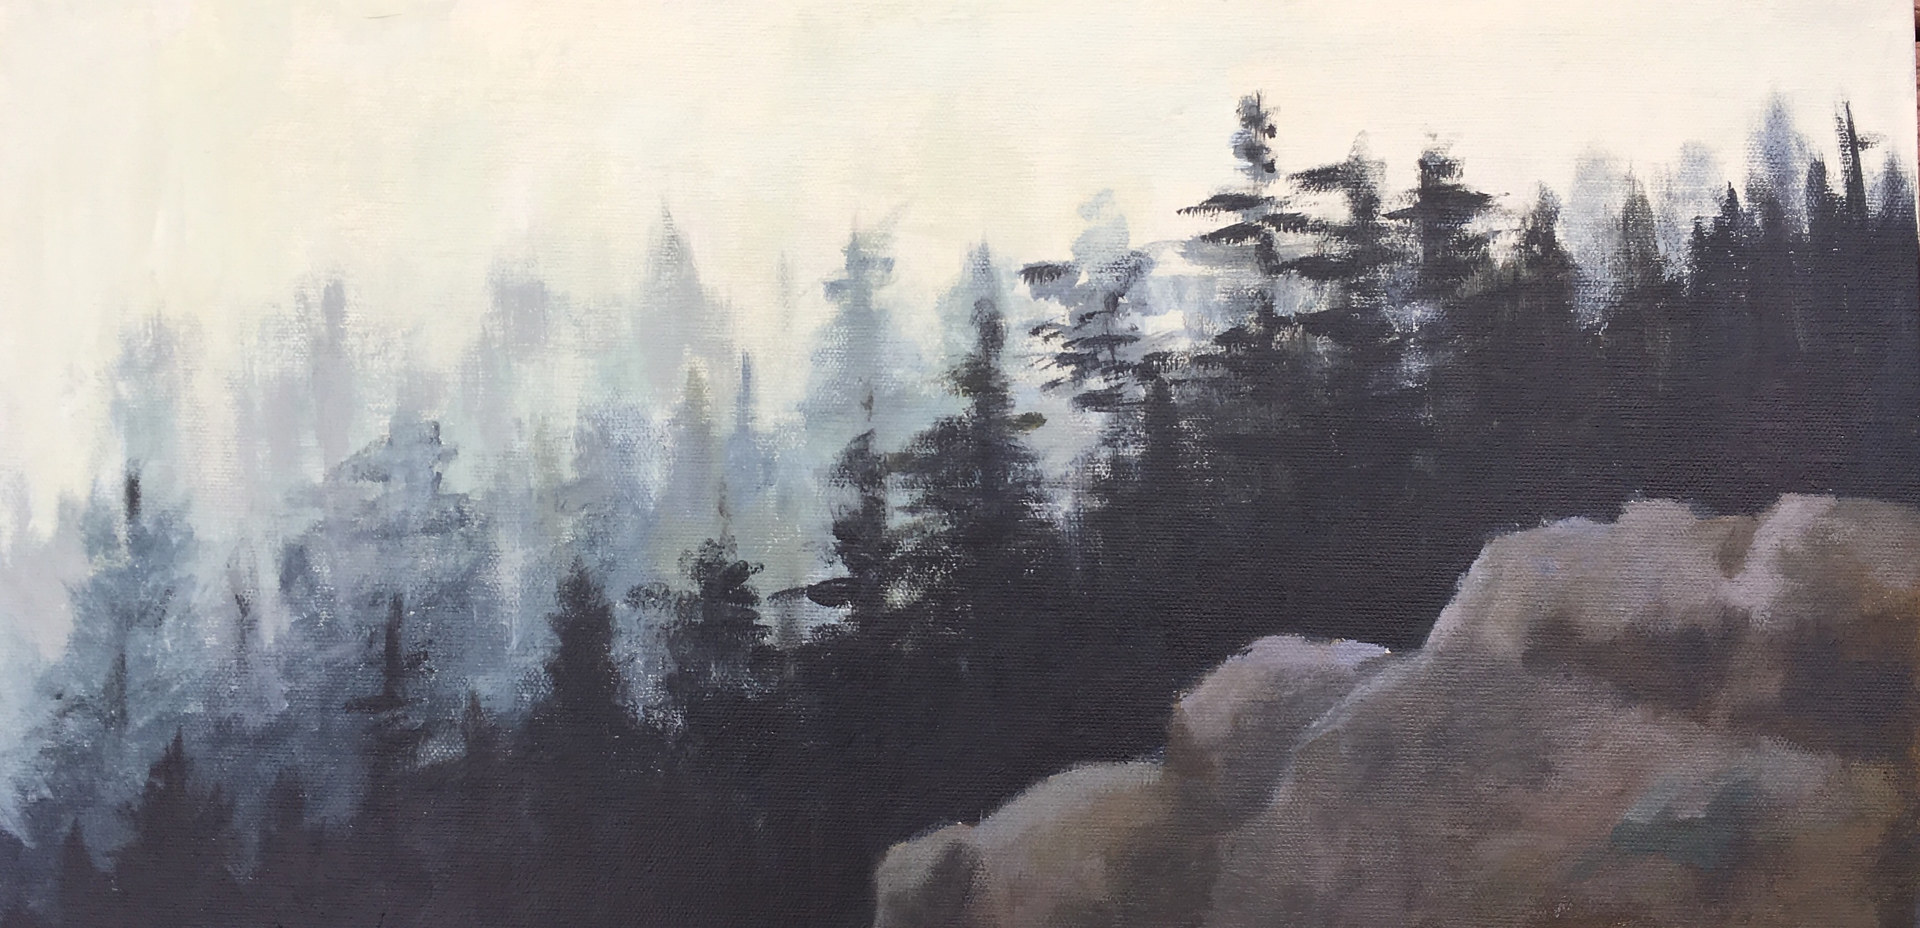 Acrylic painting Smoky Forest by Aimee Rudge